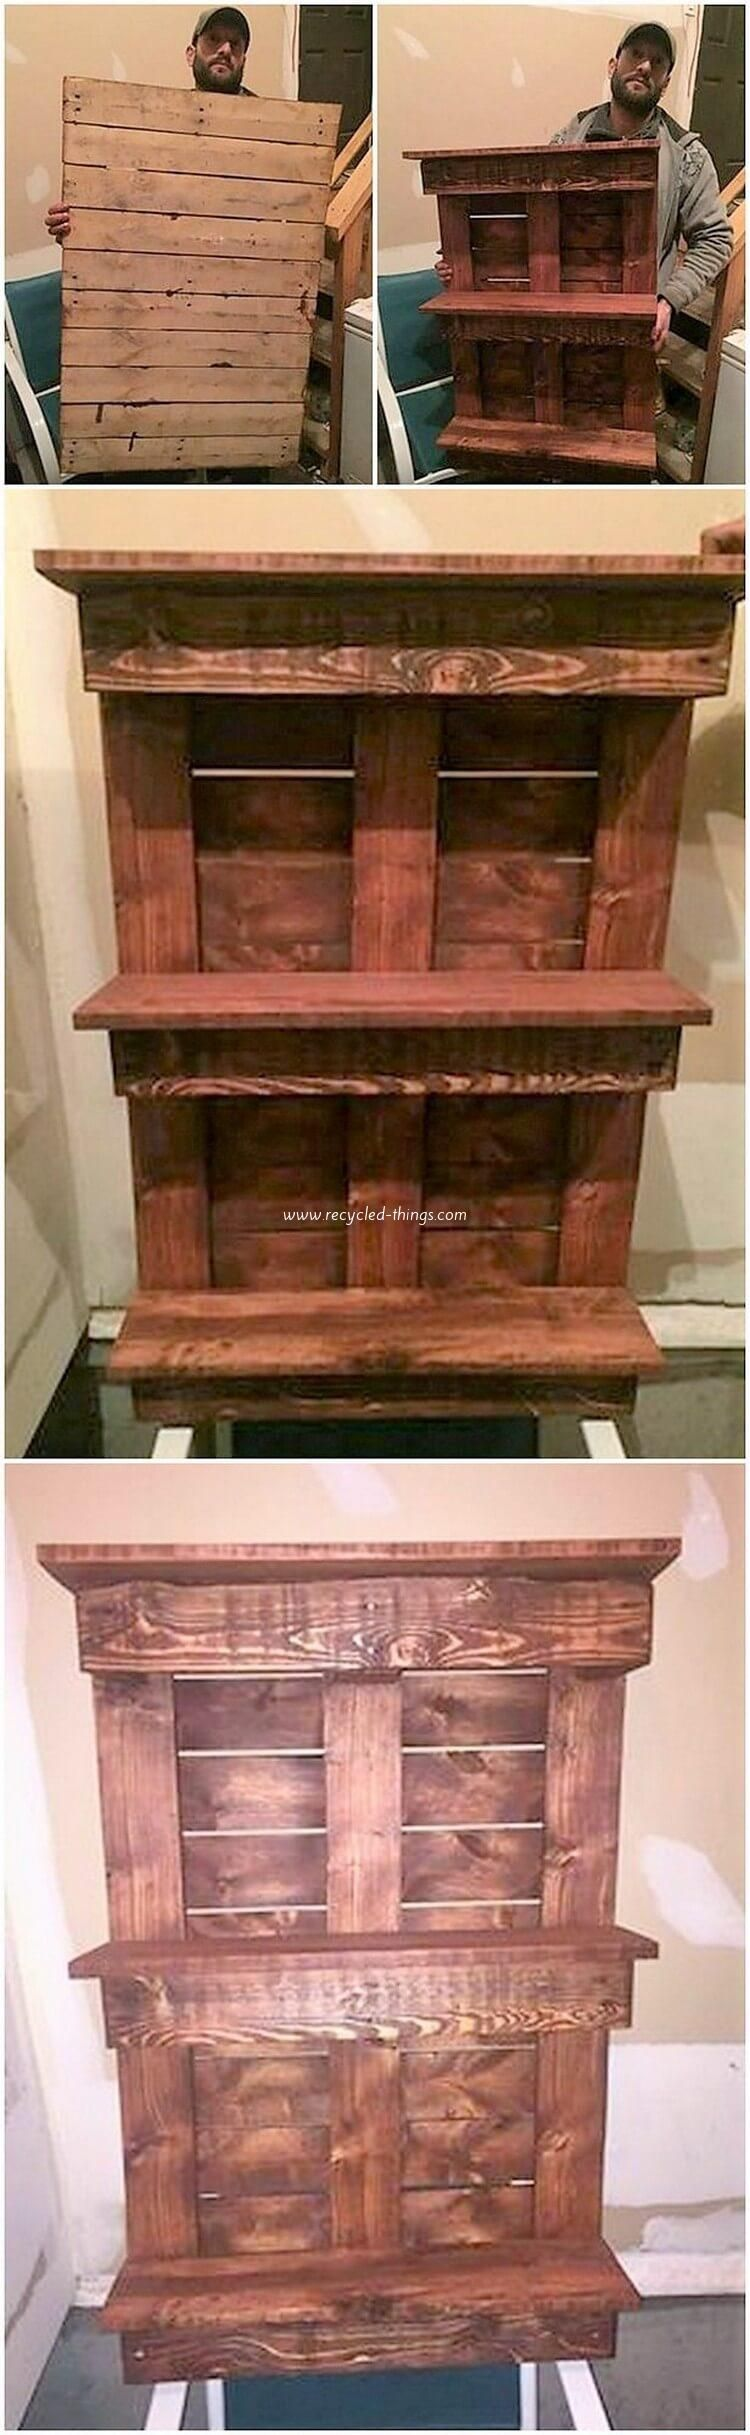 Original and Best Wood Pallet Recycling Projects | Wood ...